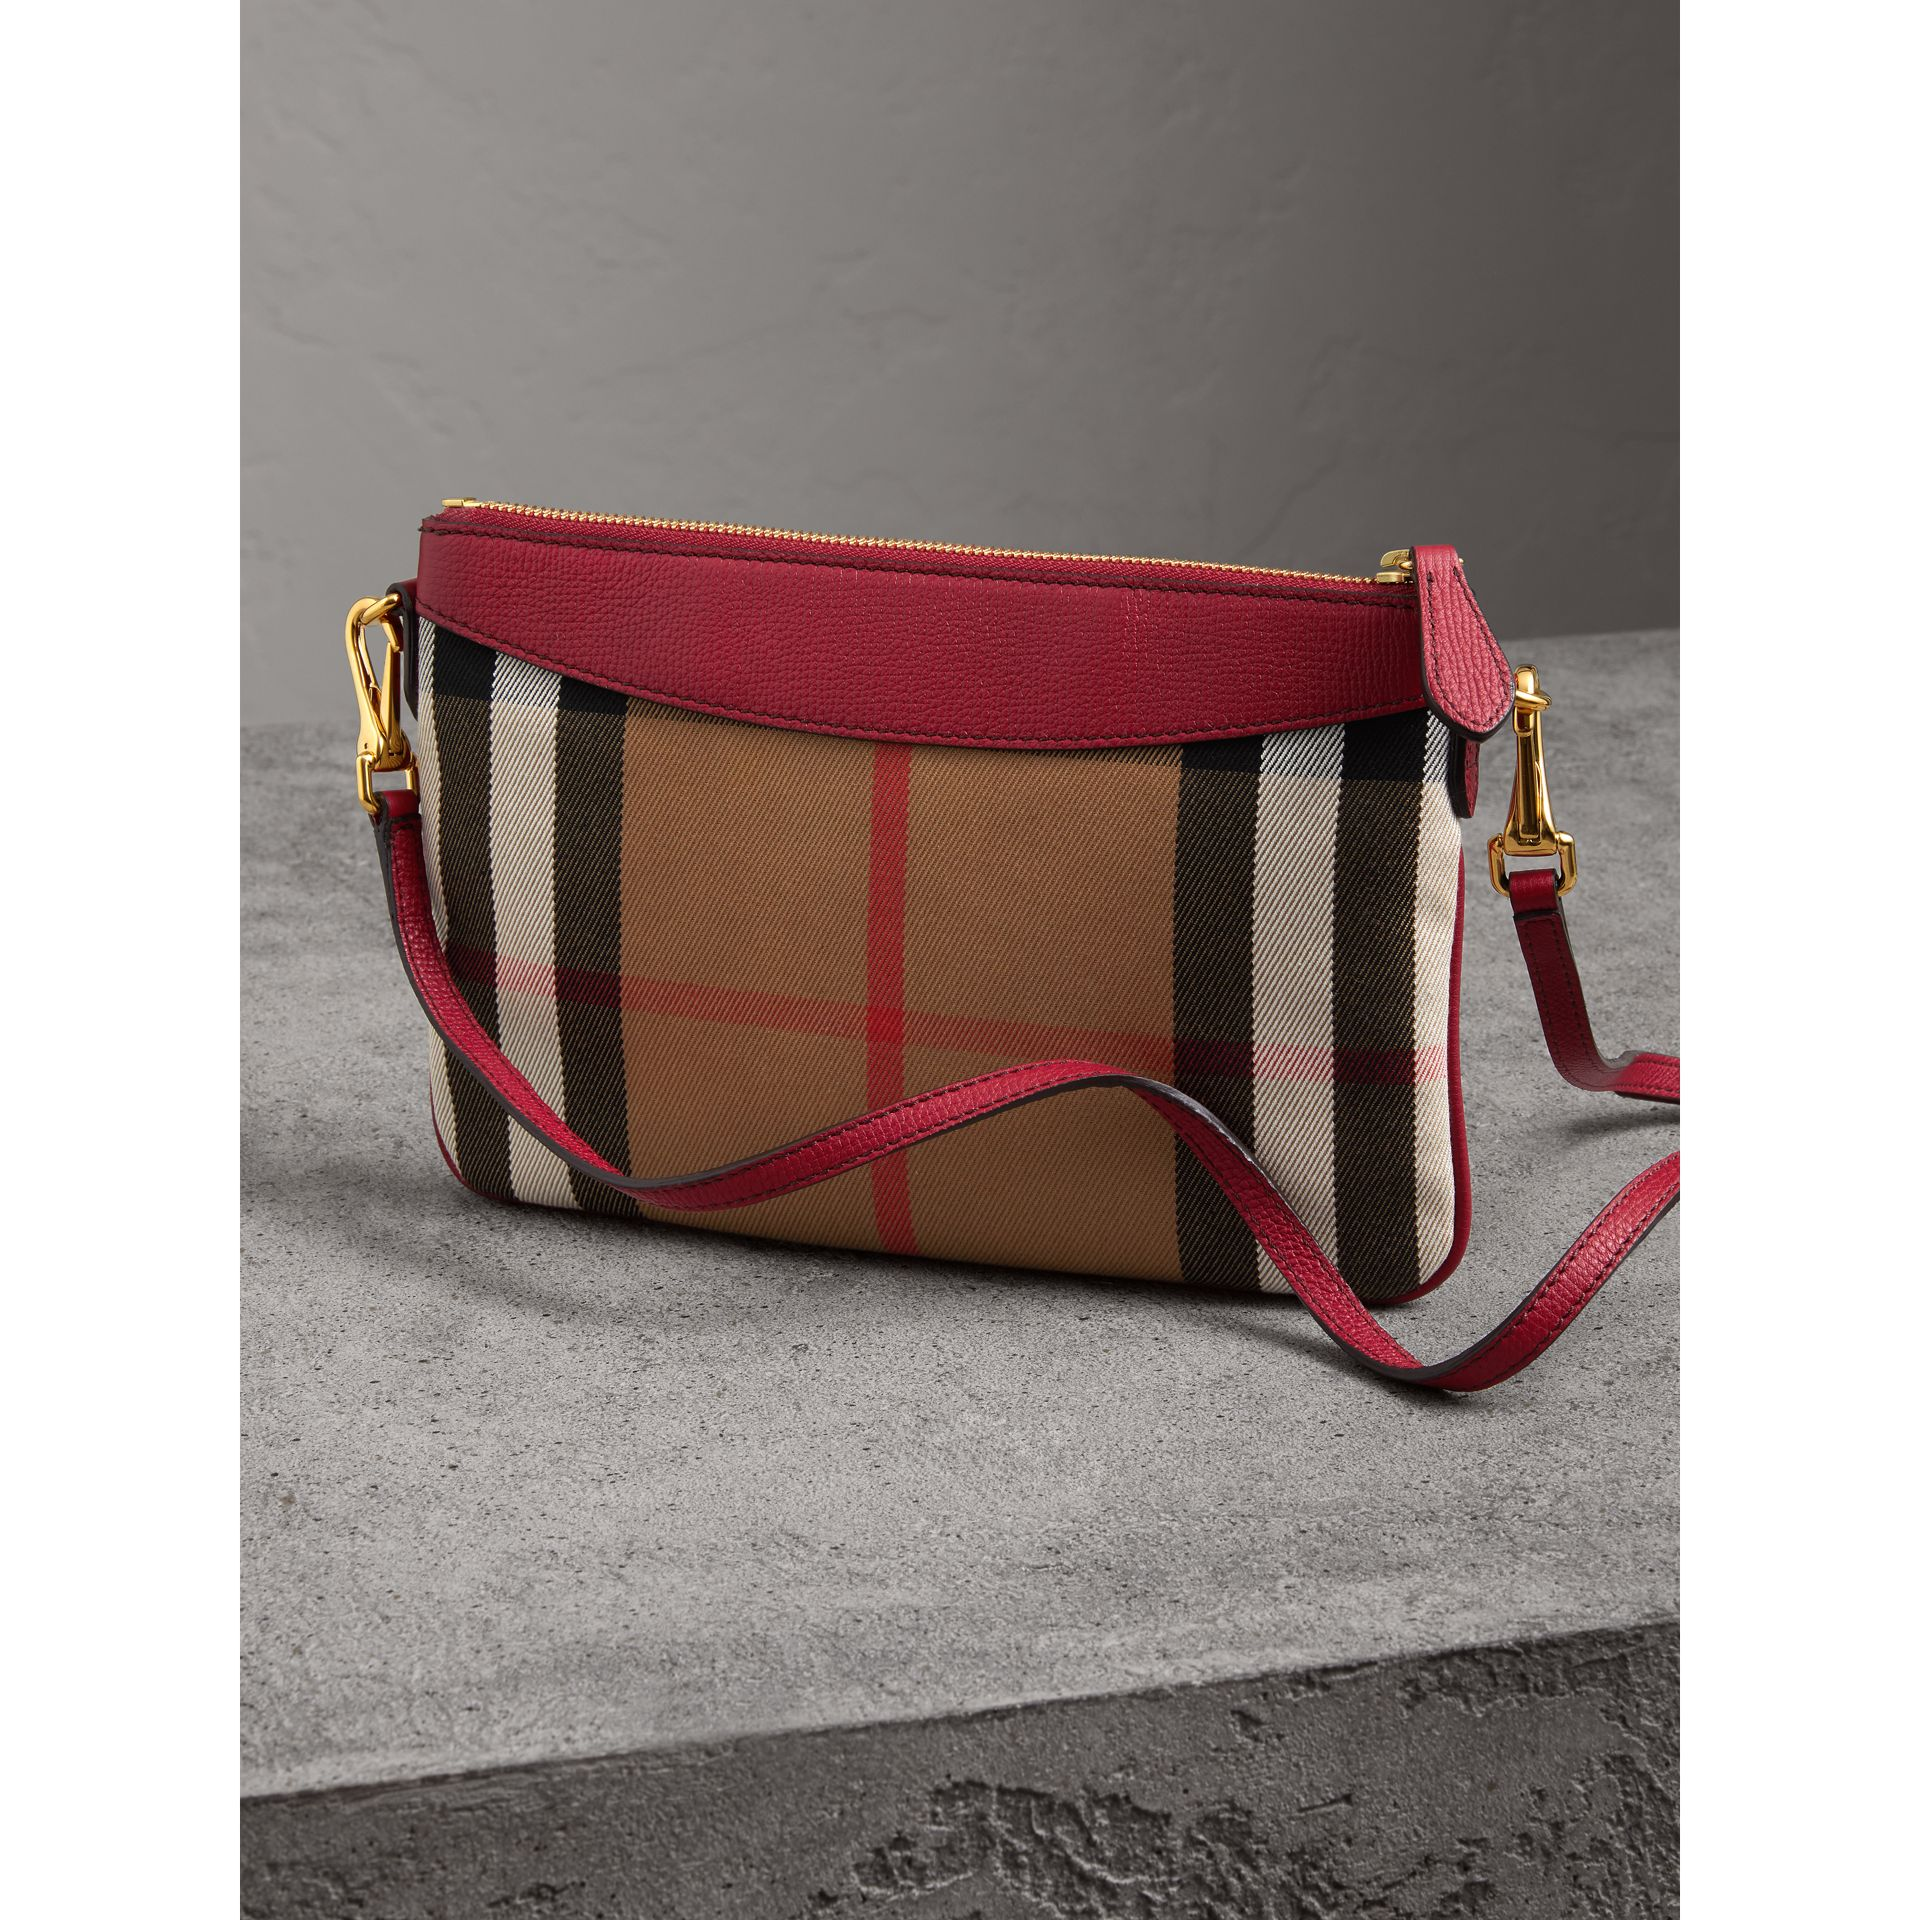 House Check and Leather Clutch Bag in Military Red - Women | Burberry United Kingdom - gallery image 4